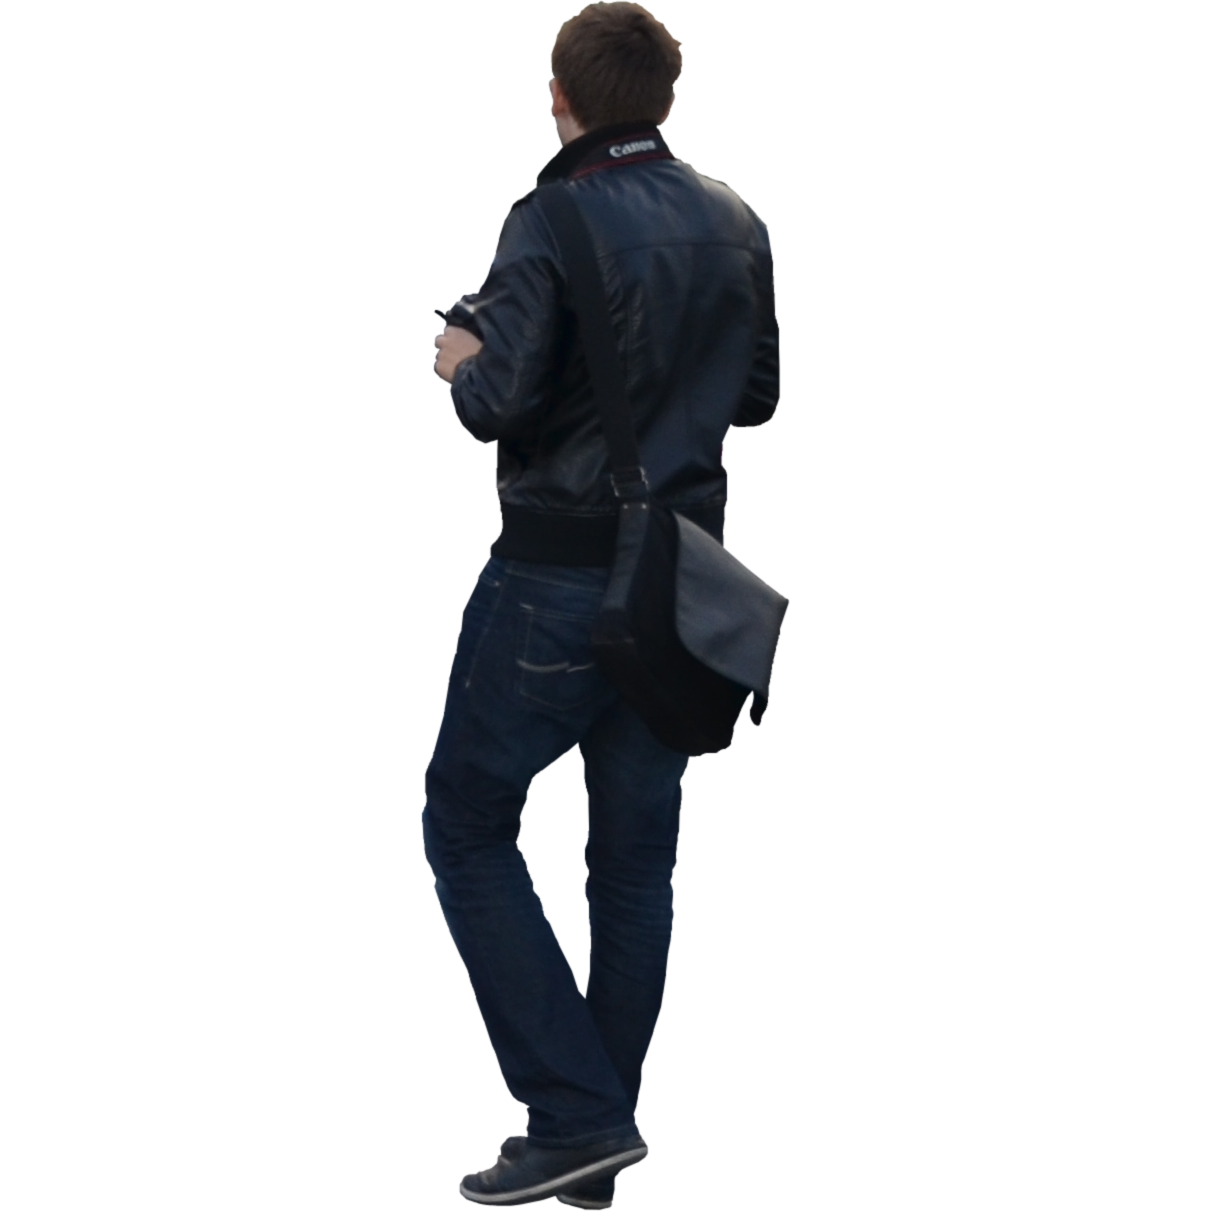 Business people walking away png. Transparent images pluspng standing